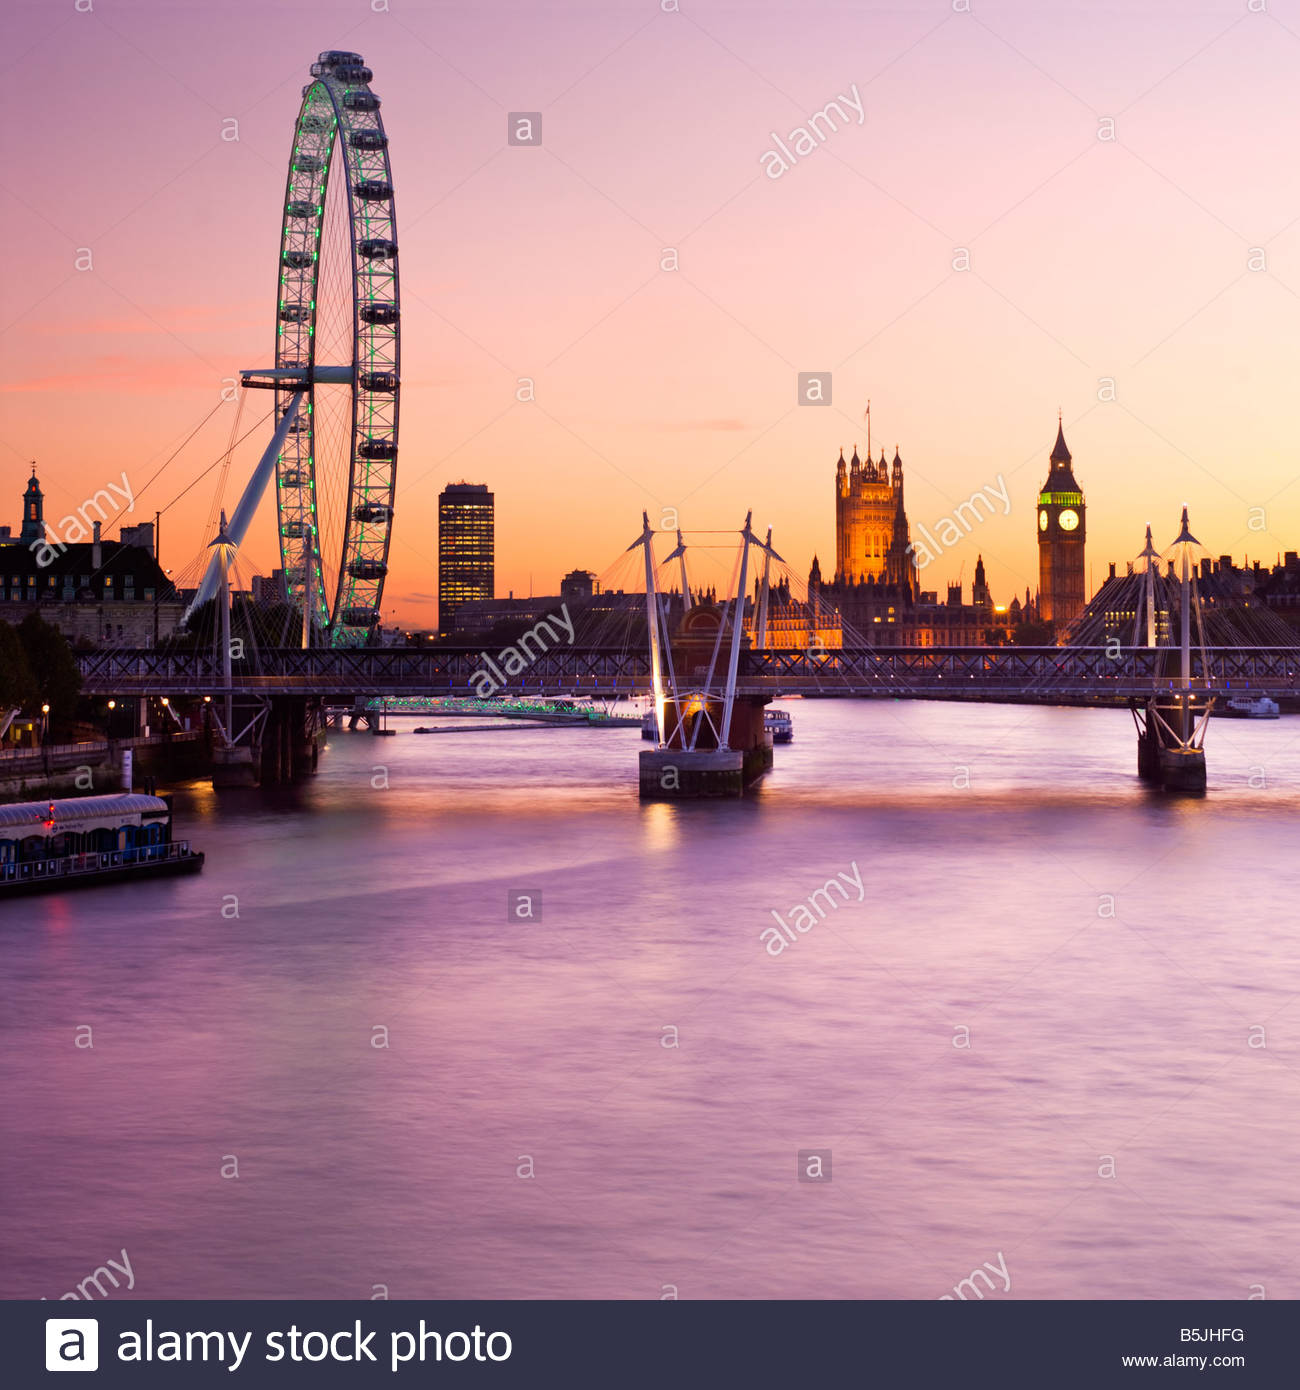 The London Eye and the Houses of Parliament, London, England. - Stock Image